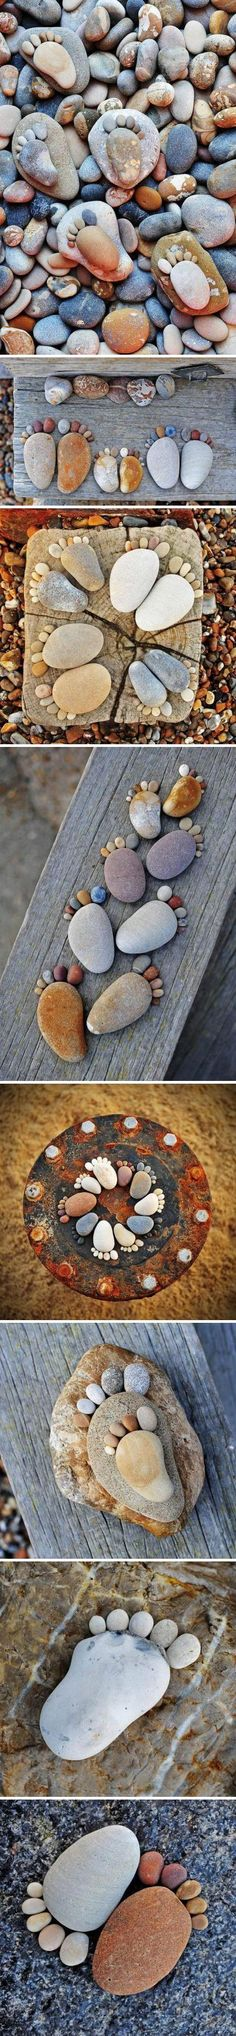 footprint camping craft